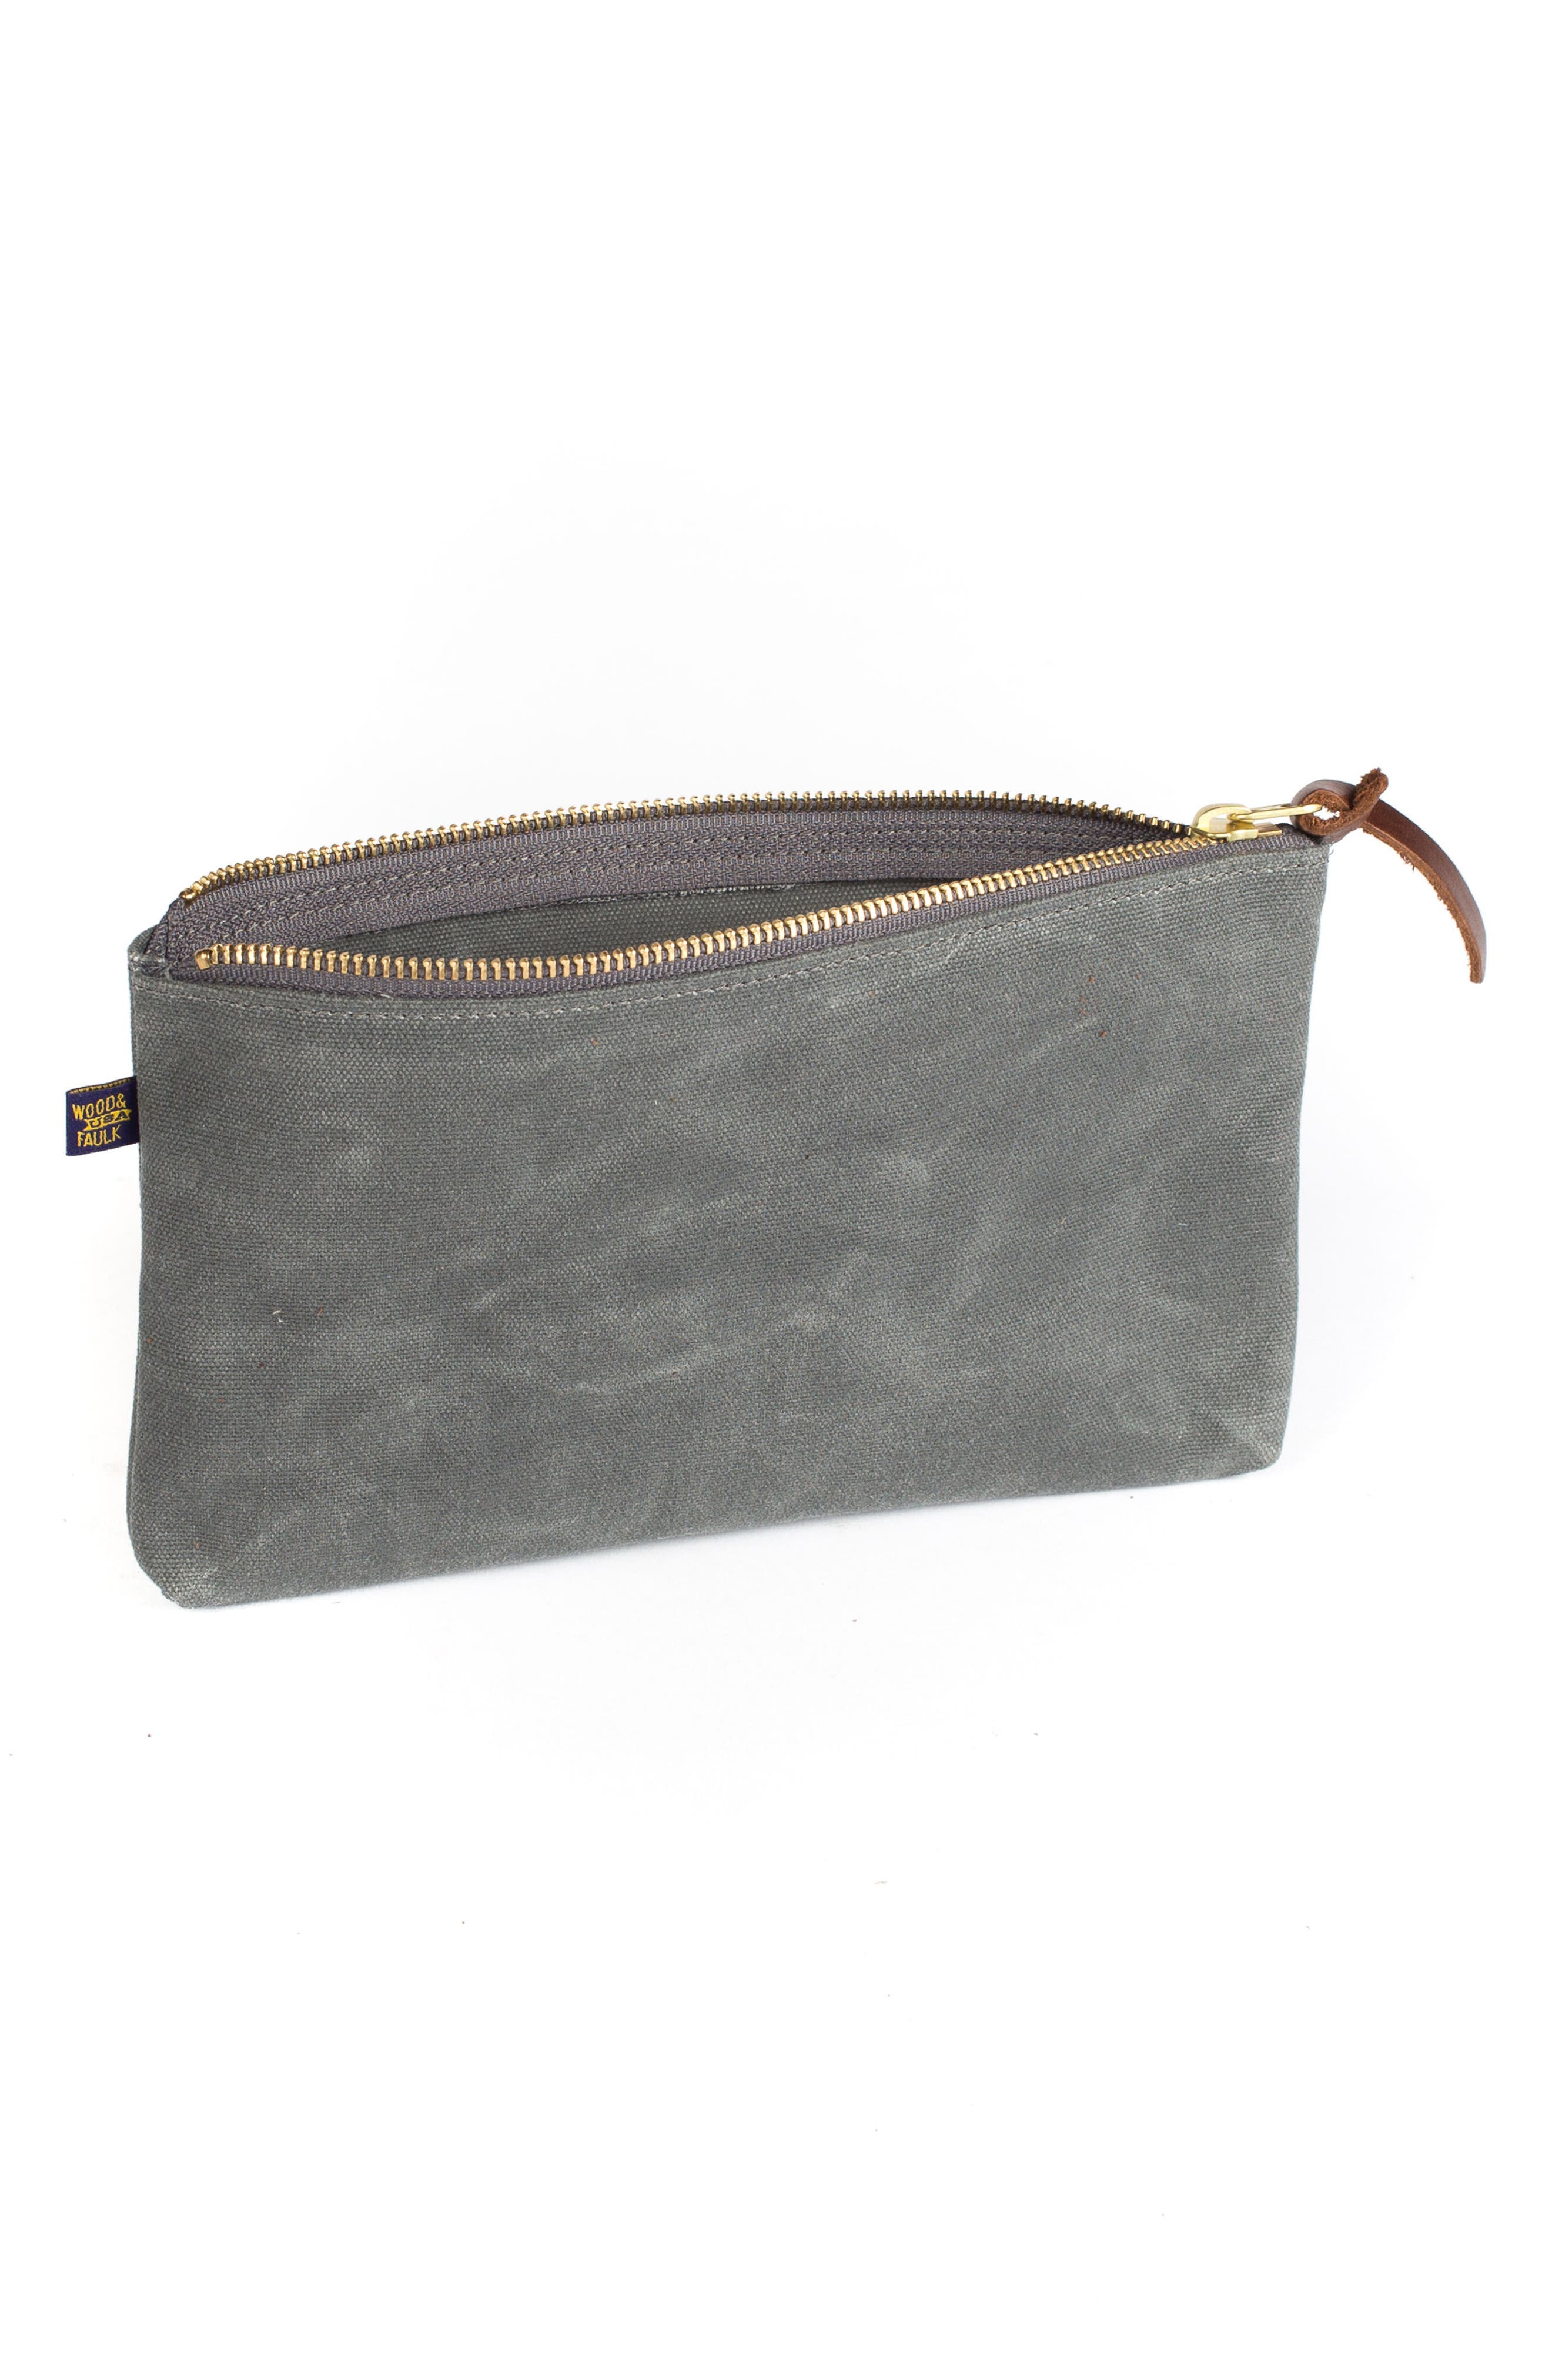 Alternate Image 2  - Wood&Faulk Waxed Canvas Zip Pouch